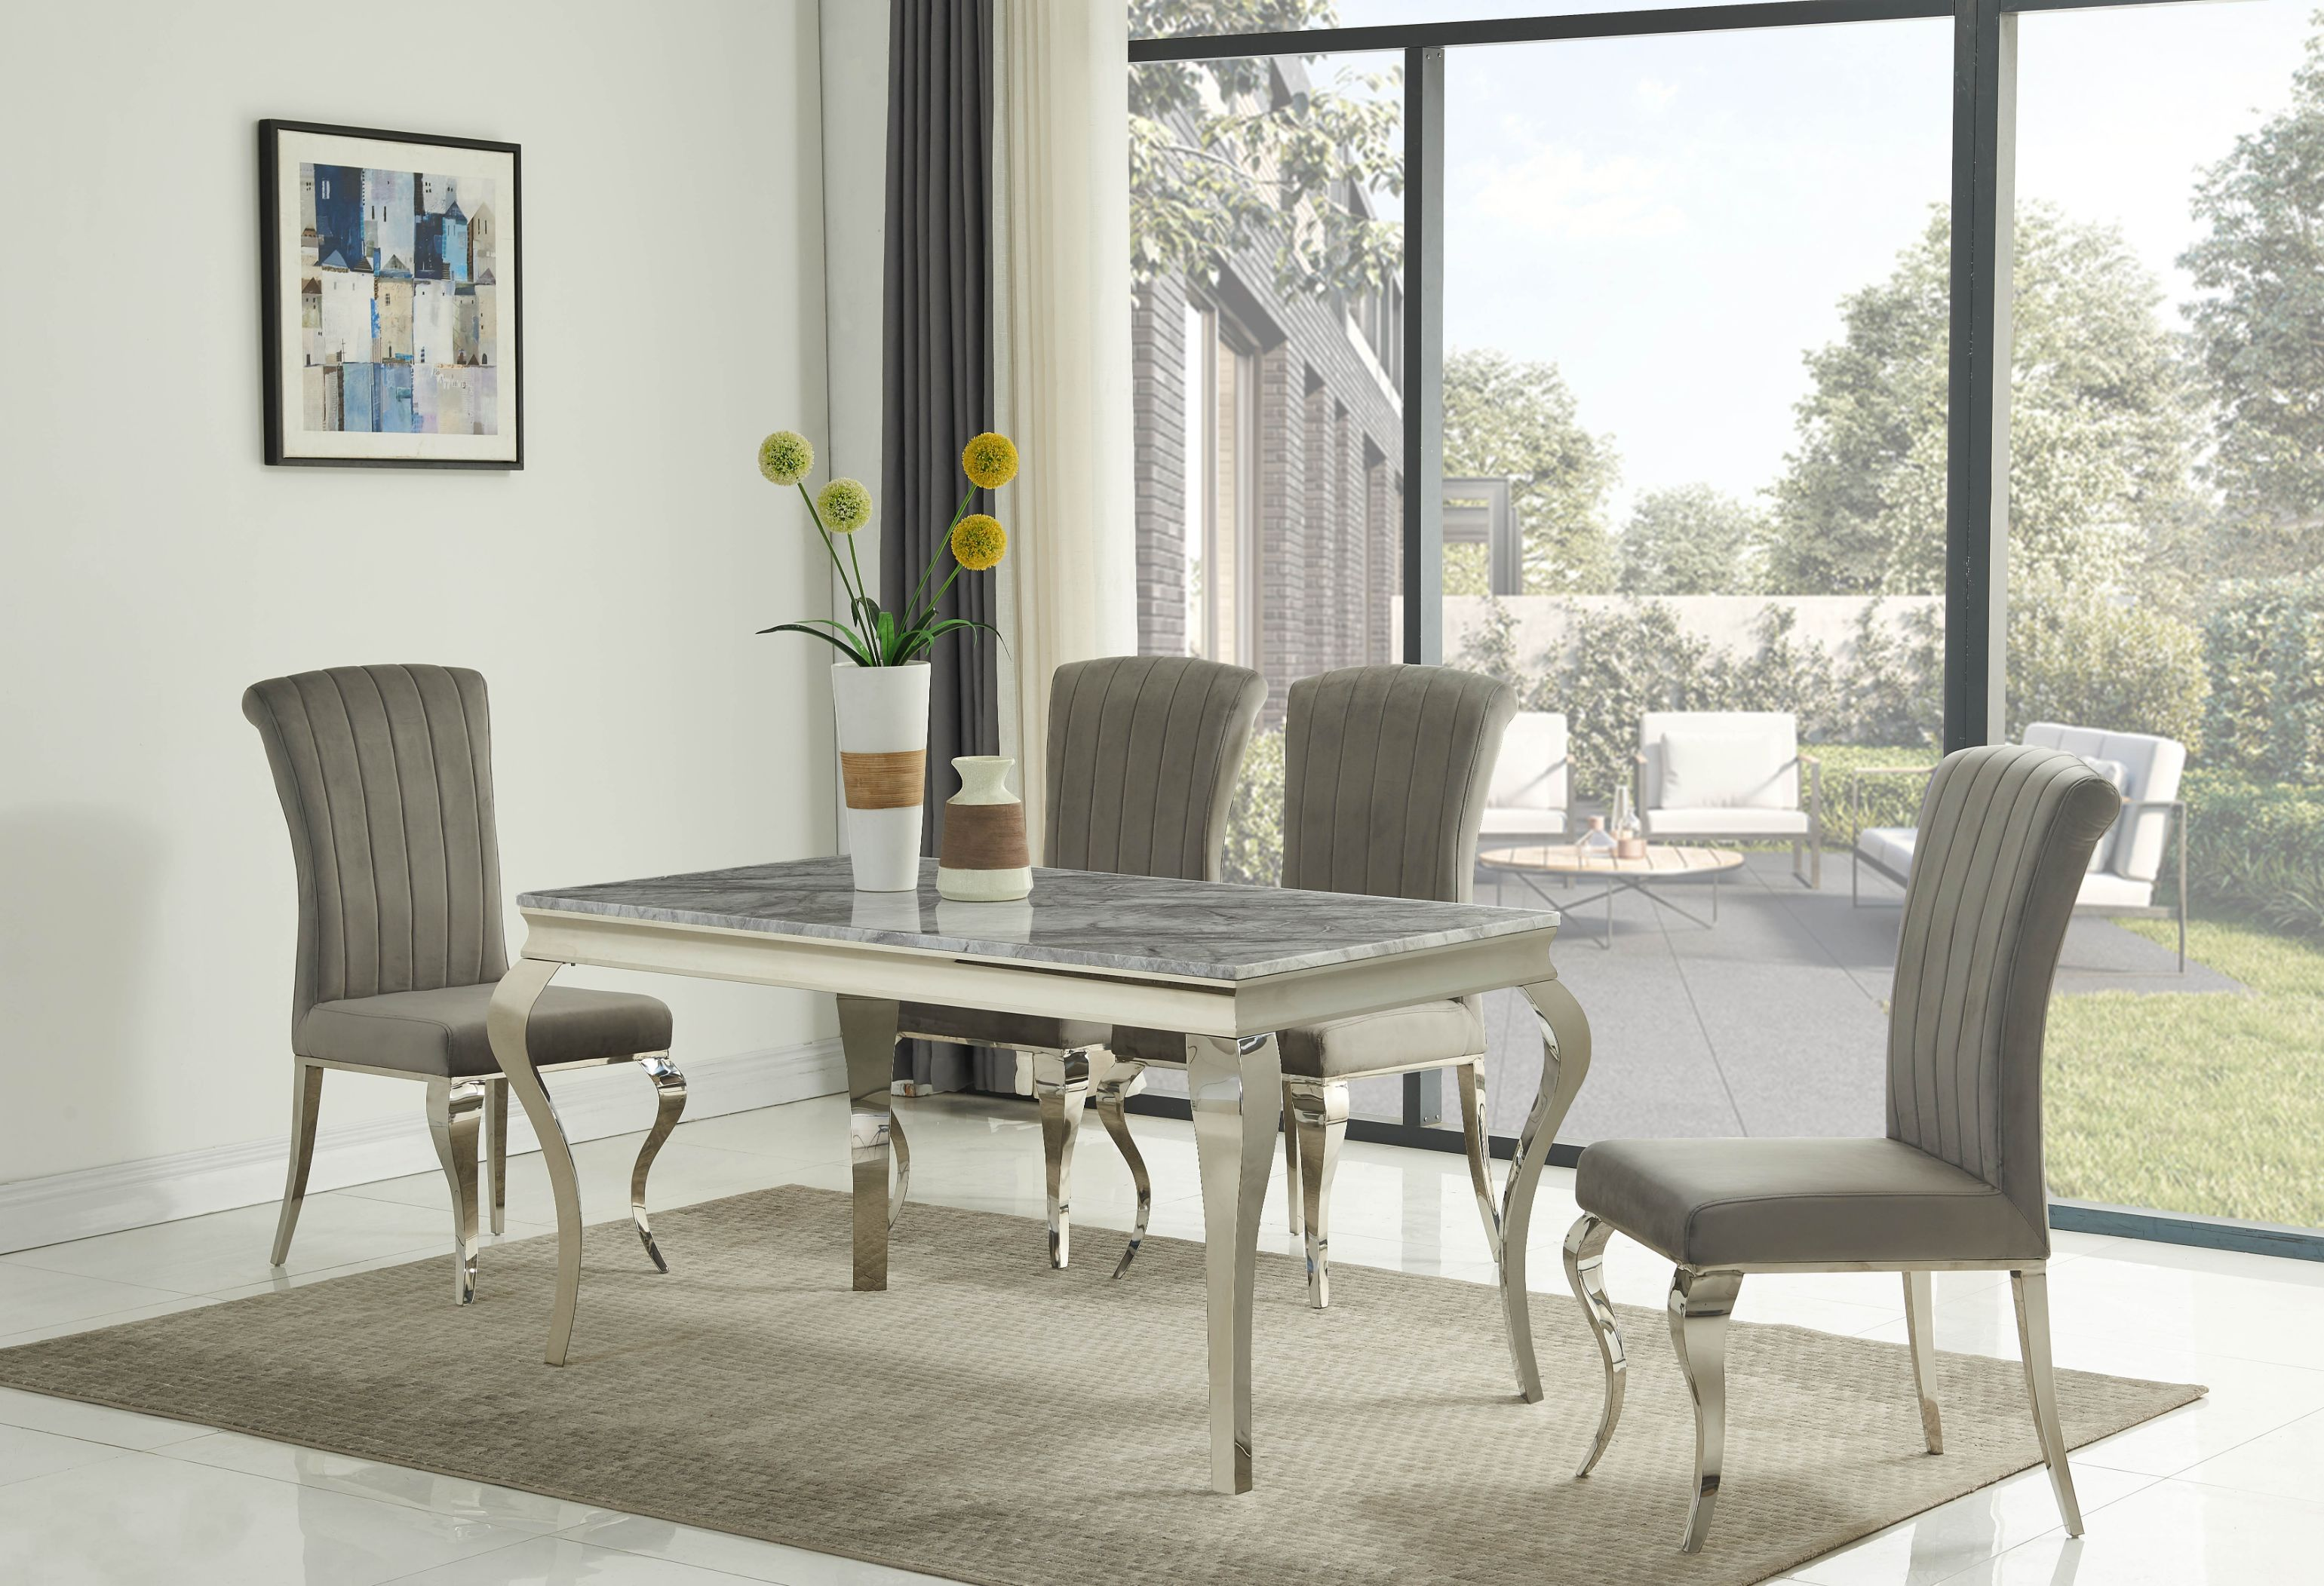 Liyana GREY Small 140cm Table DT-800GR & Liyana Grey Chairs CH-891GR